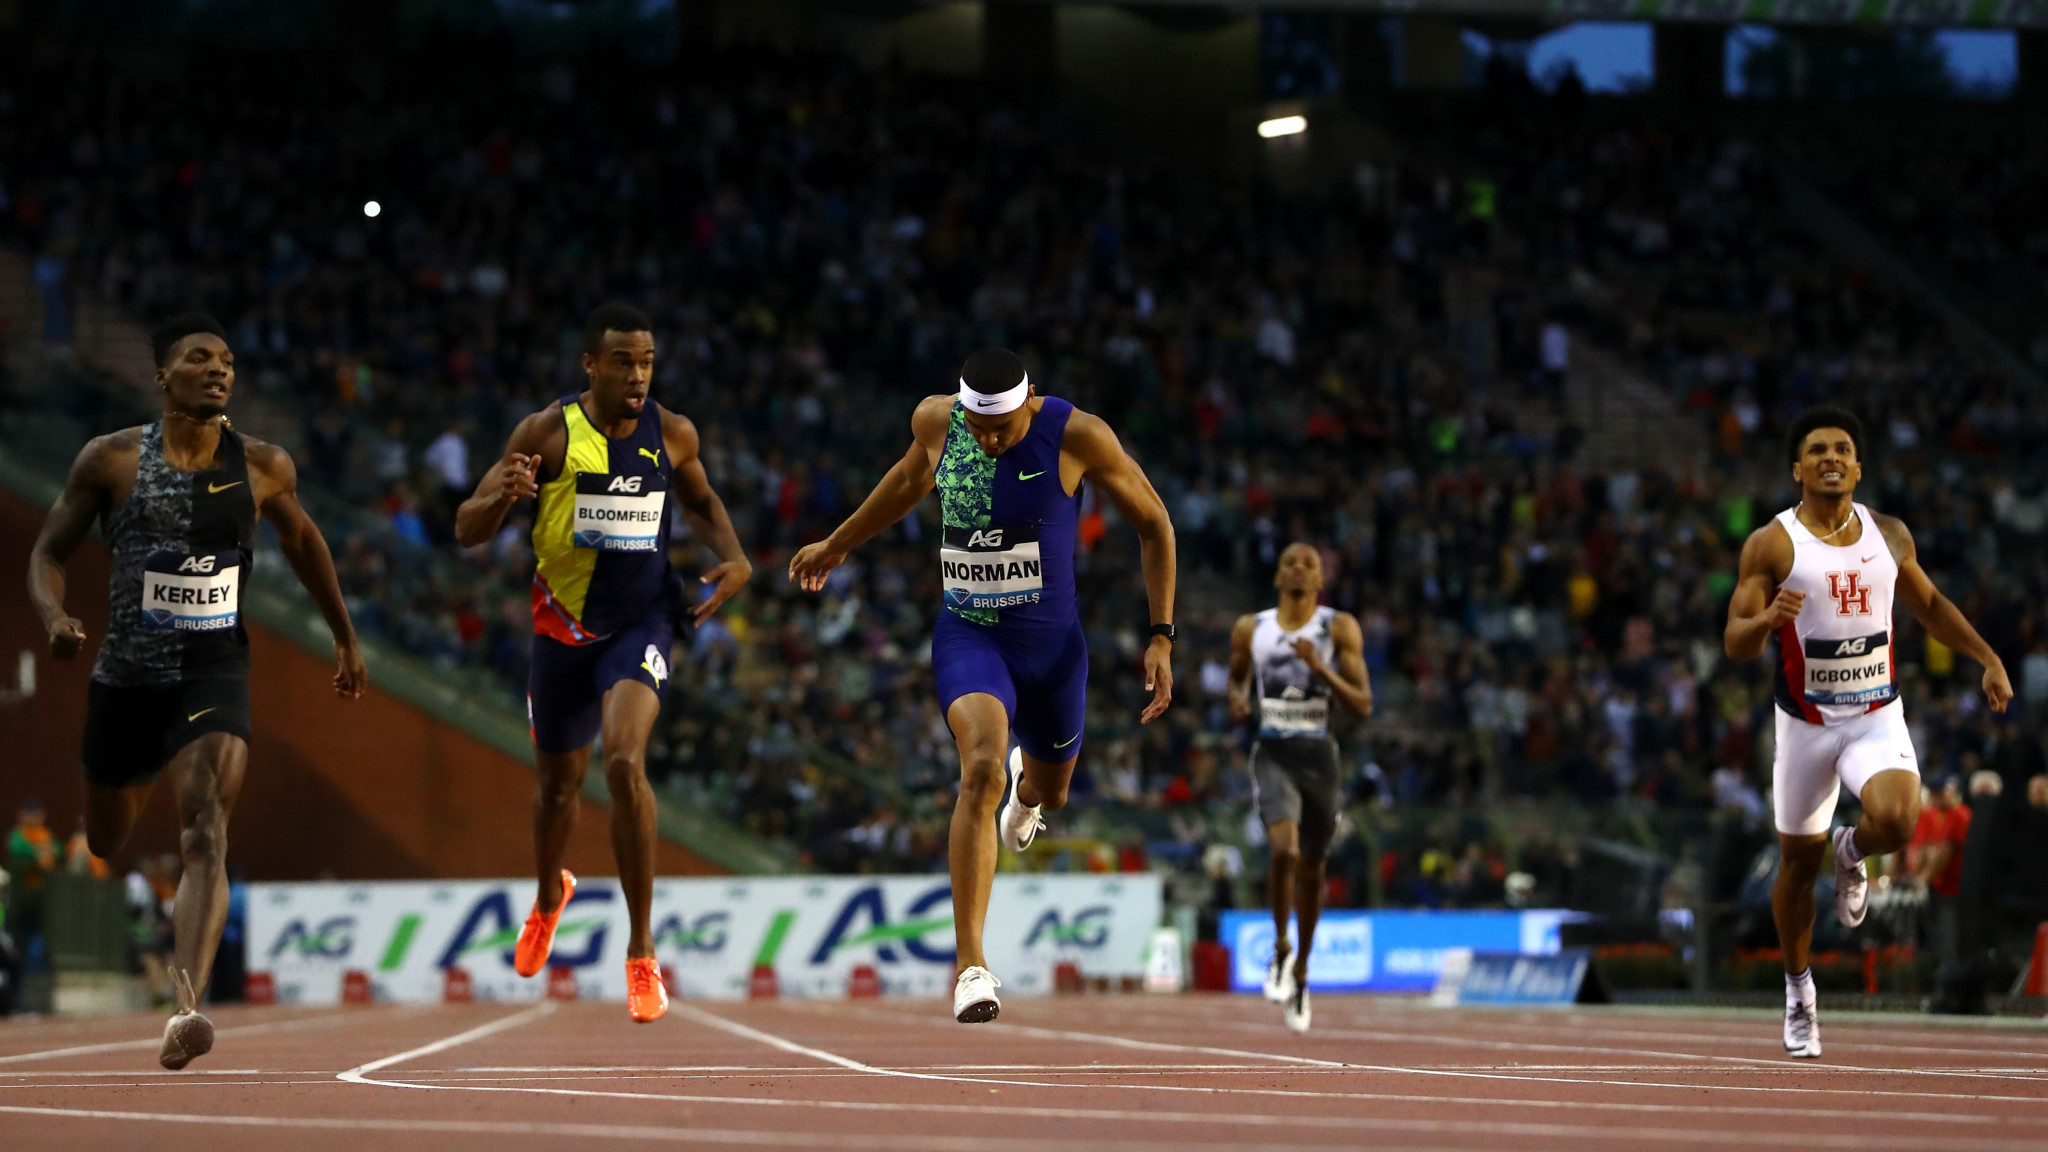 World Athletics publishes guidelines for competition organisers during pandemic